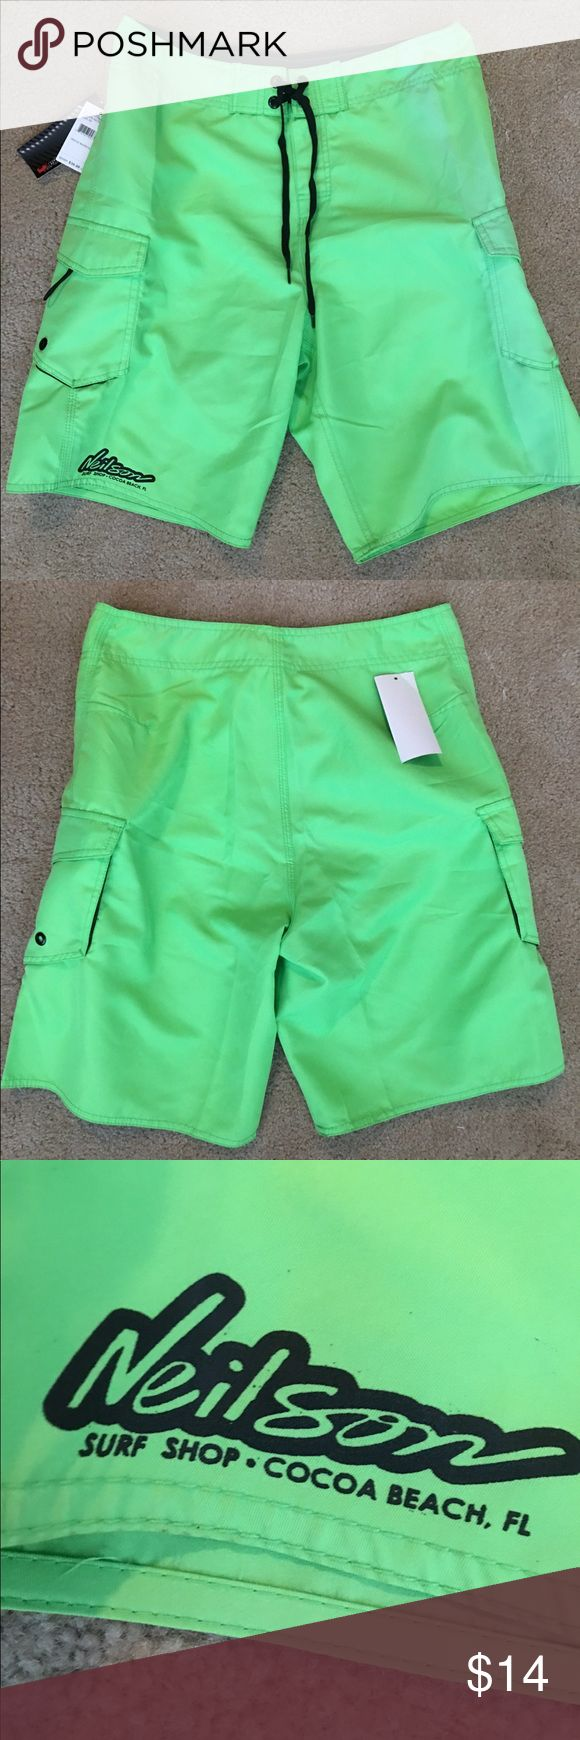 🆕 Men's board shorts NWRT. Size 30. Men's neon green board shorts. Swim or festivals! Shorts